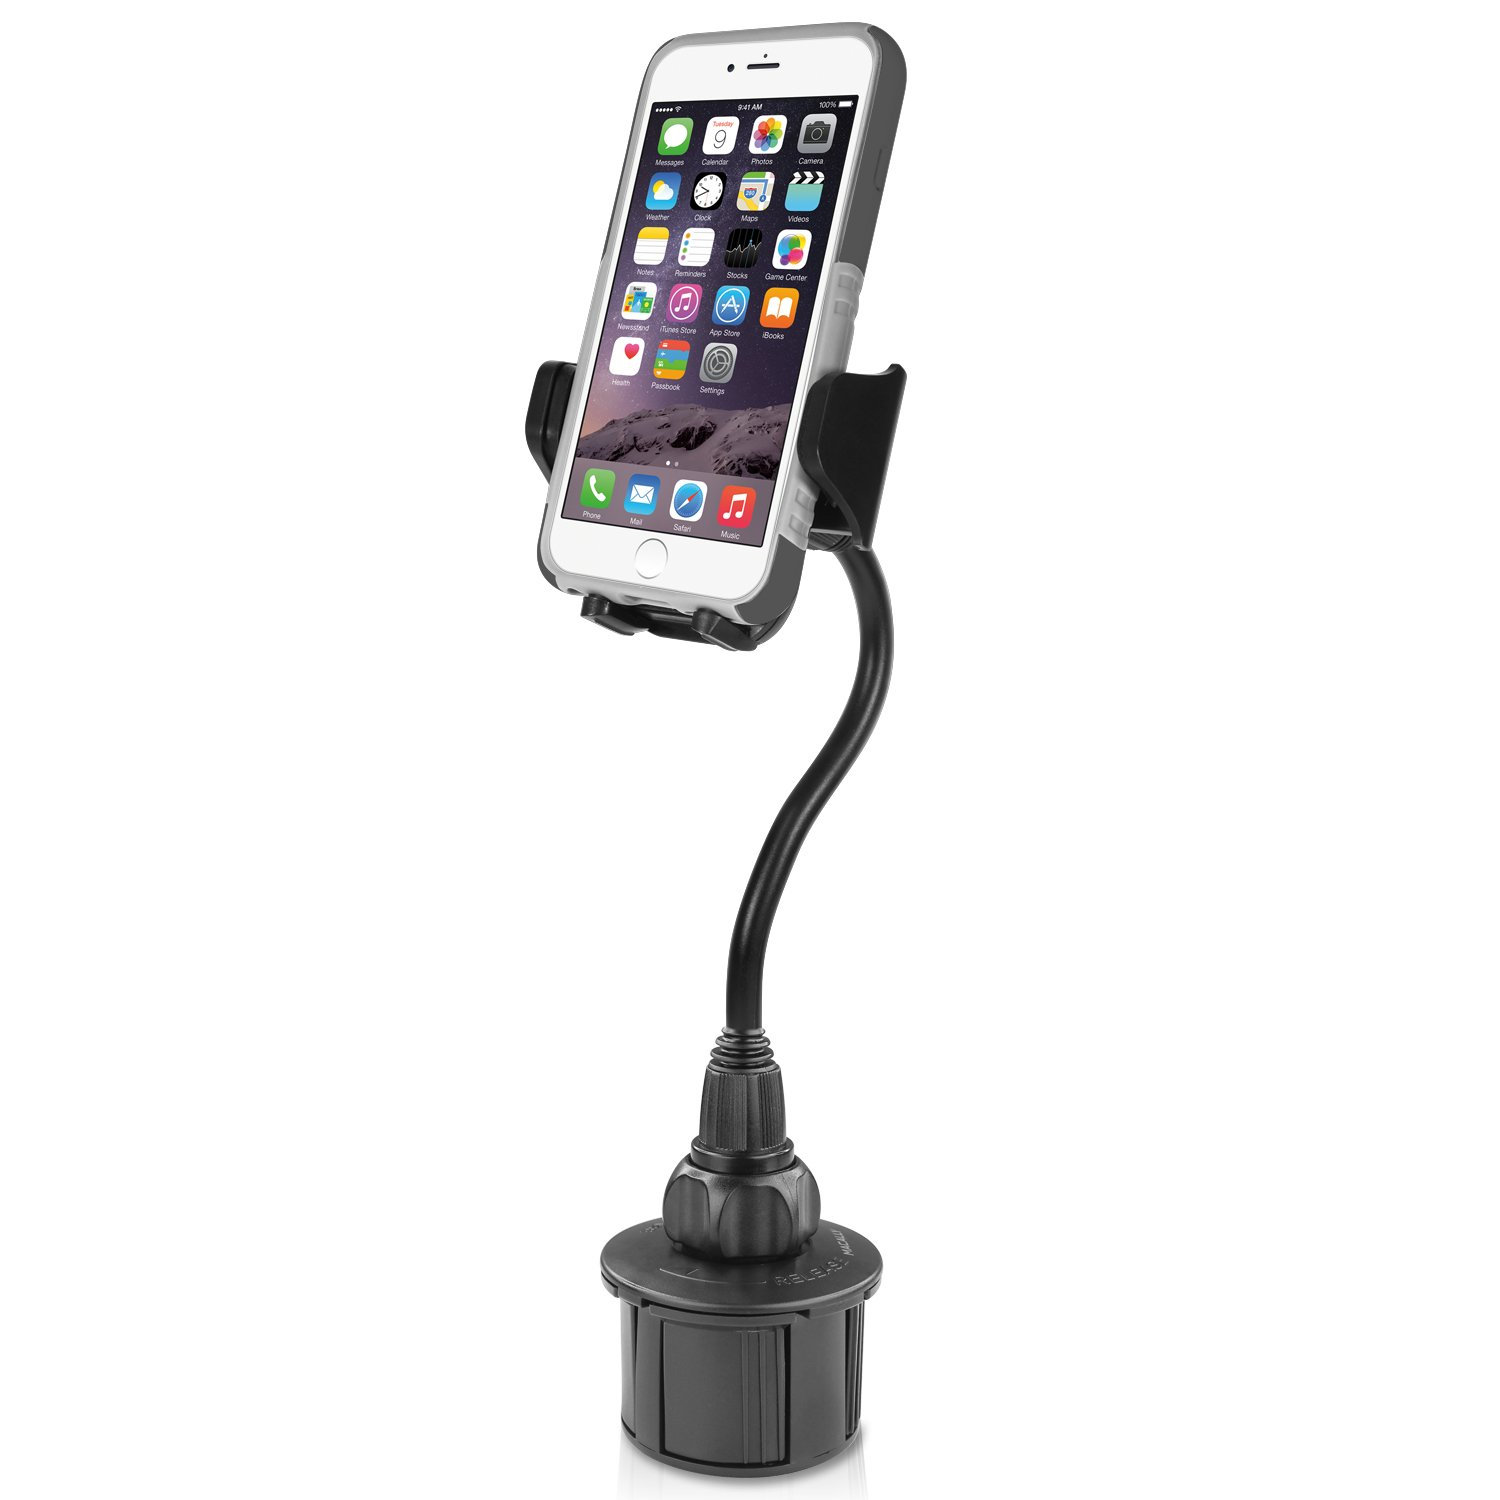 Macally Car Cup Holder Phone Mount with A Flexible Extra Long 8'' Neck for iPhone XS Max XR X 8 7 Plus 6 5S SE, Samsung S10 S10E S9 Plus S8, Motorola Moto, Google Pixel XL 3 (MCUP2XL) by Macally